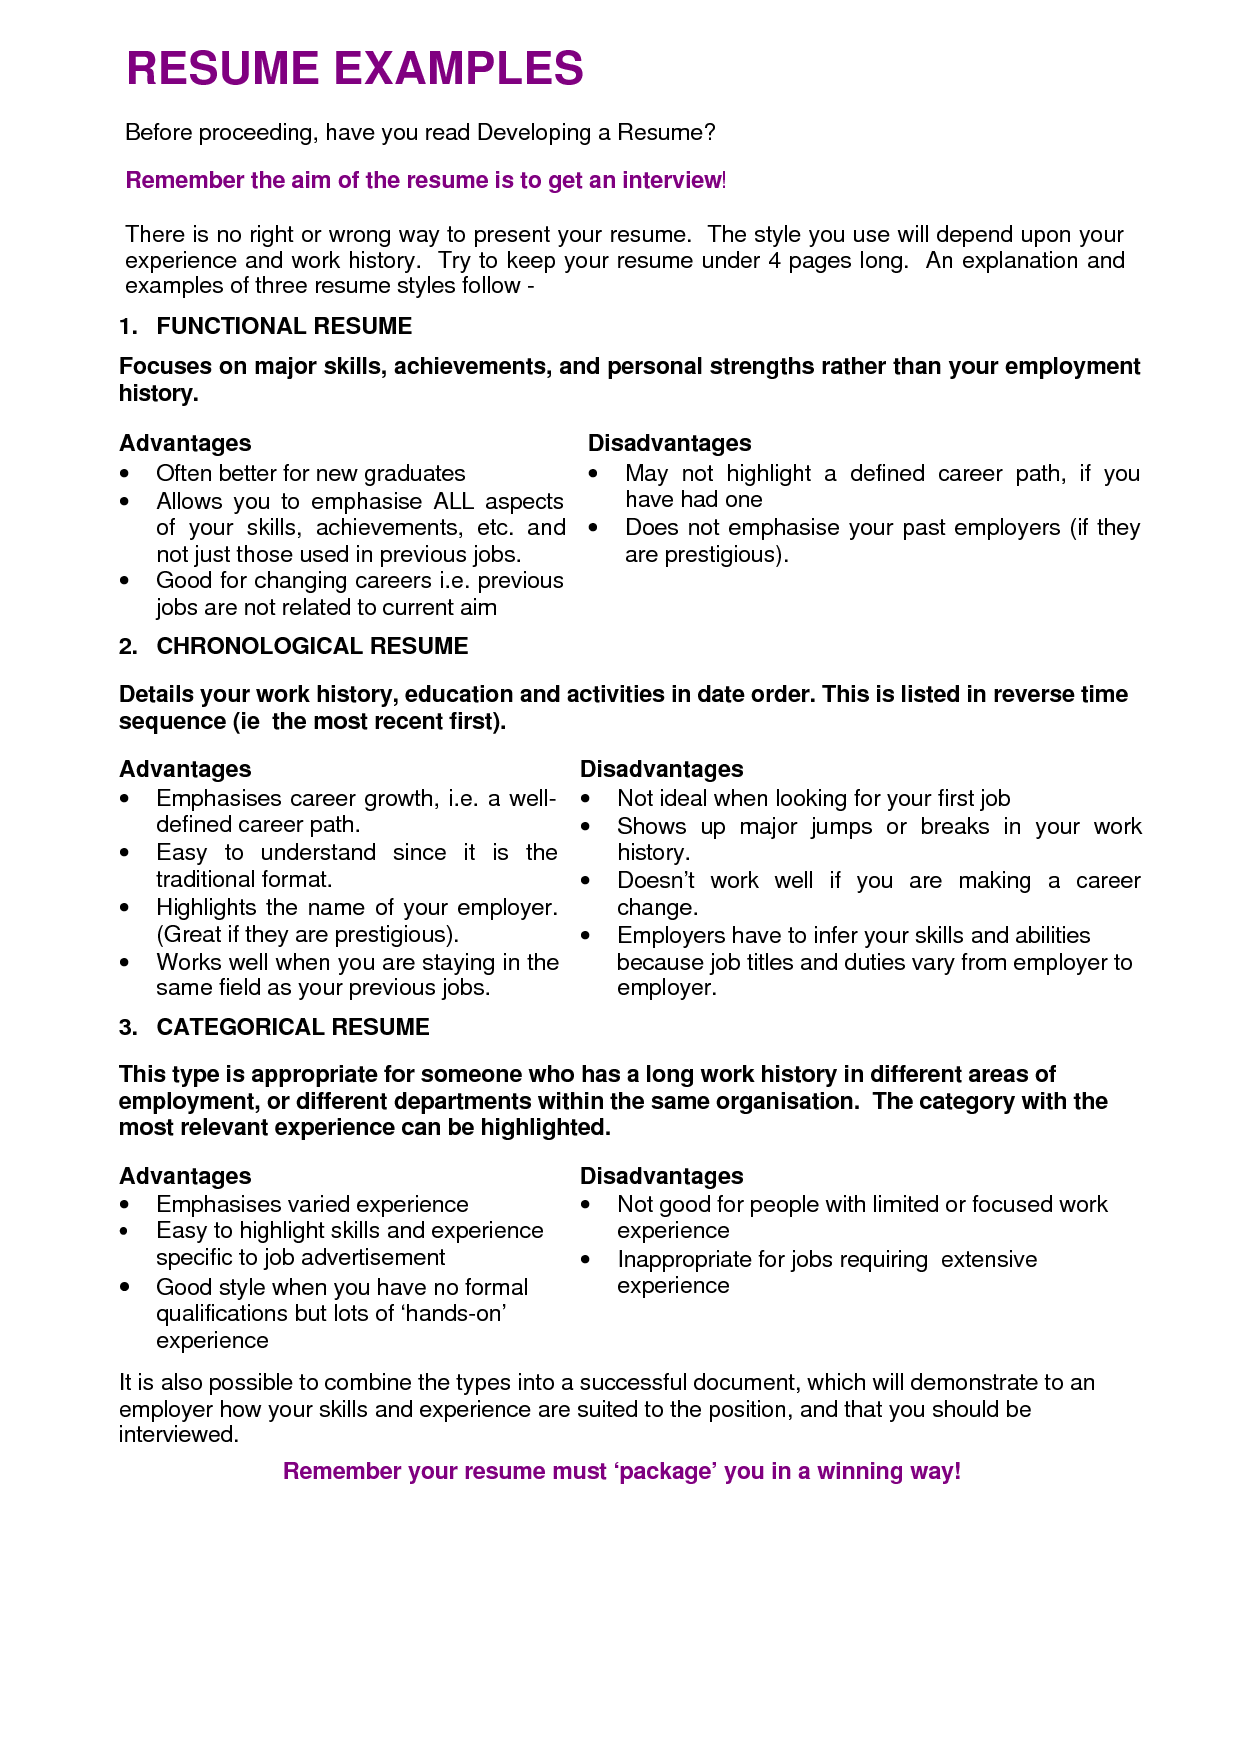 Resume Objective Examples Best TemplateResume Objective Examples ...